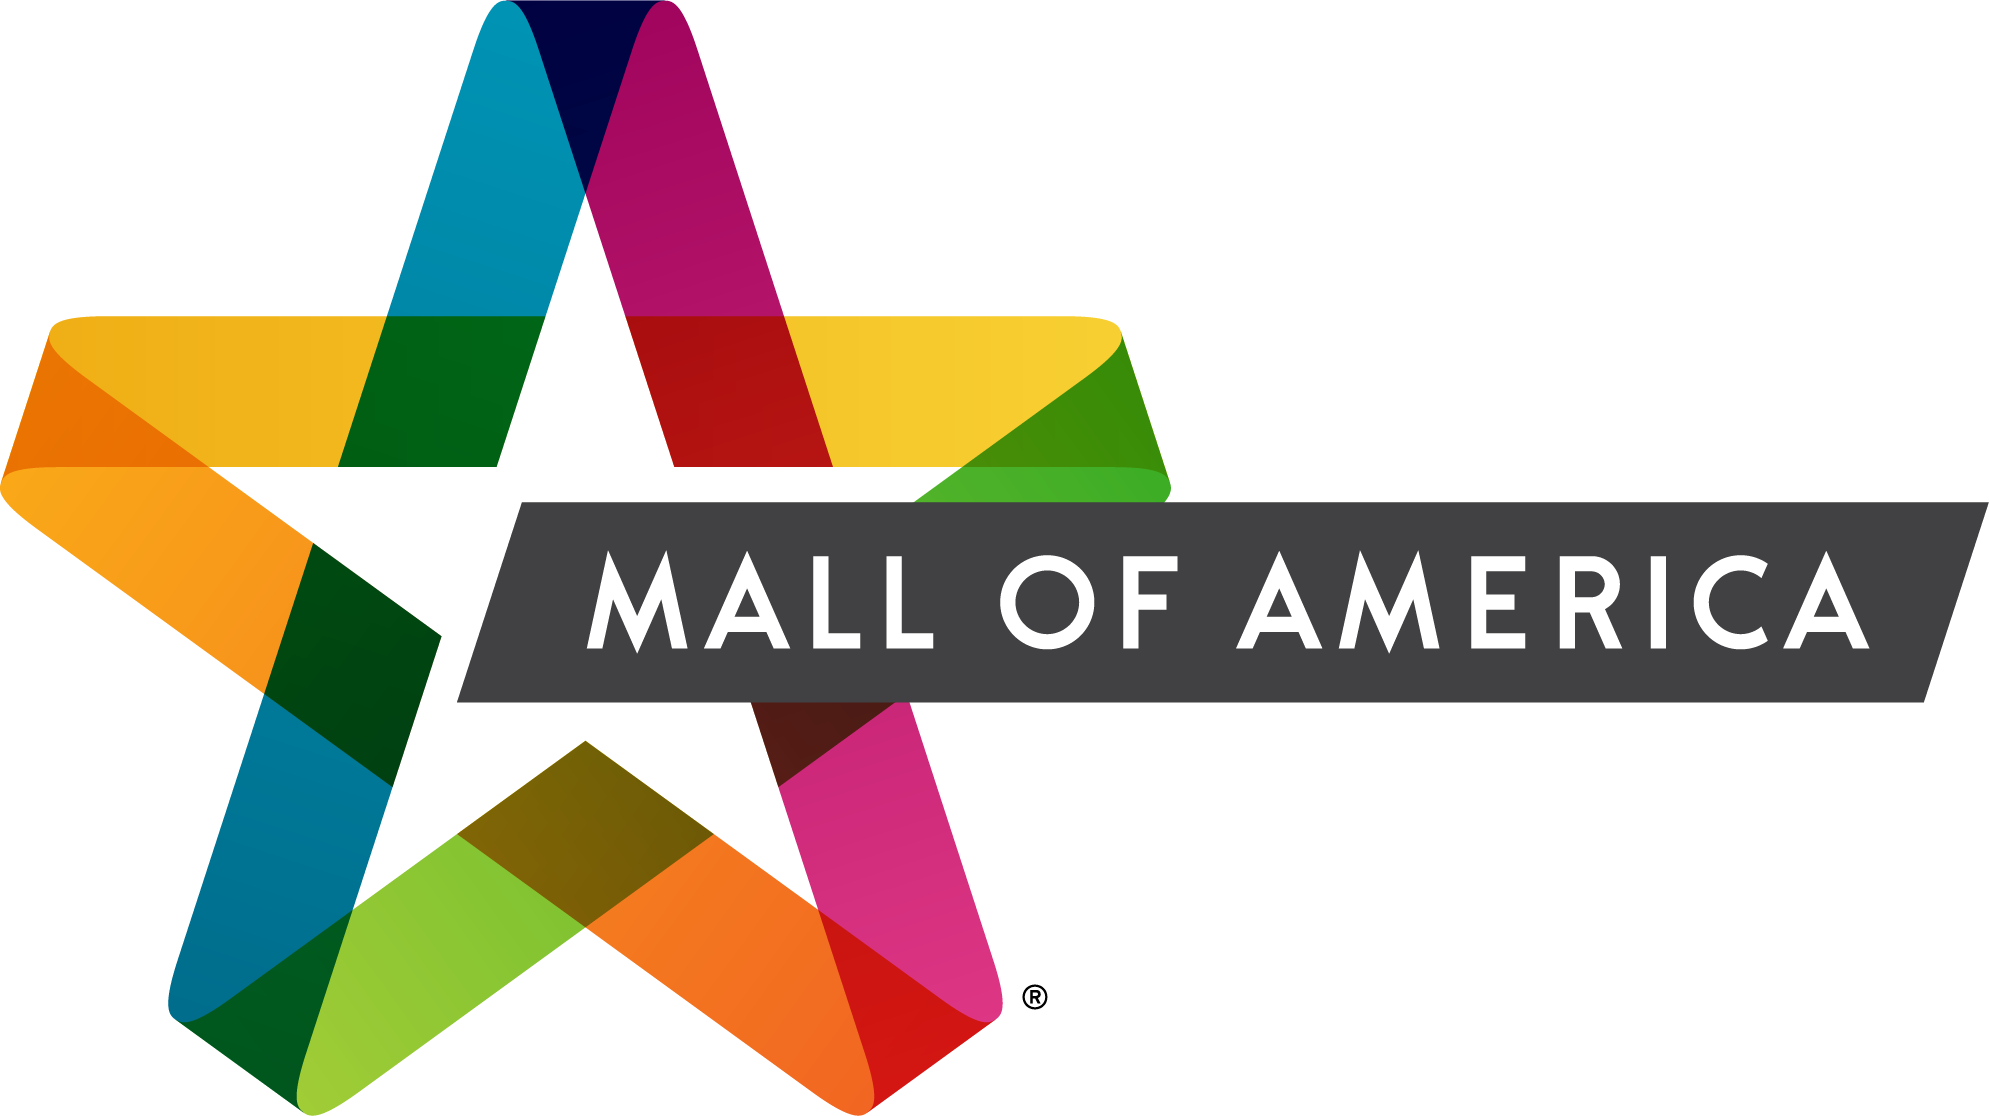 Mall of America Recognized With Social Responsibility Award For Its Commitment To Sustainability